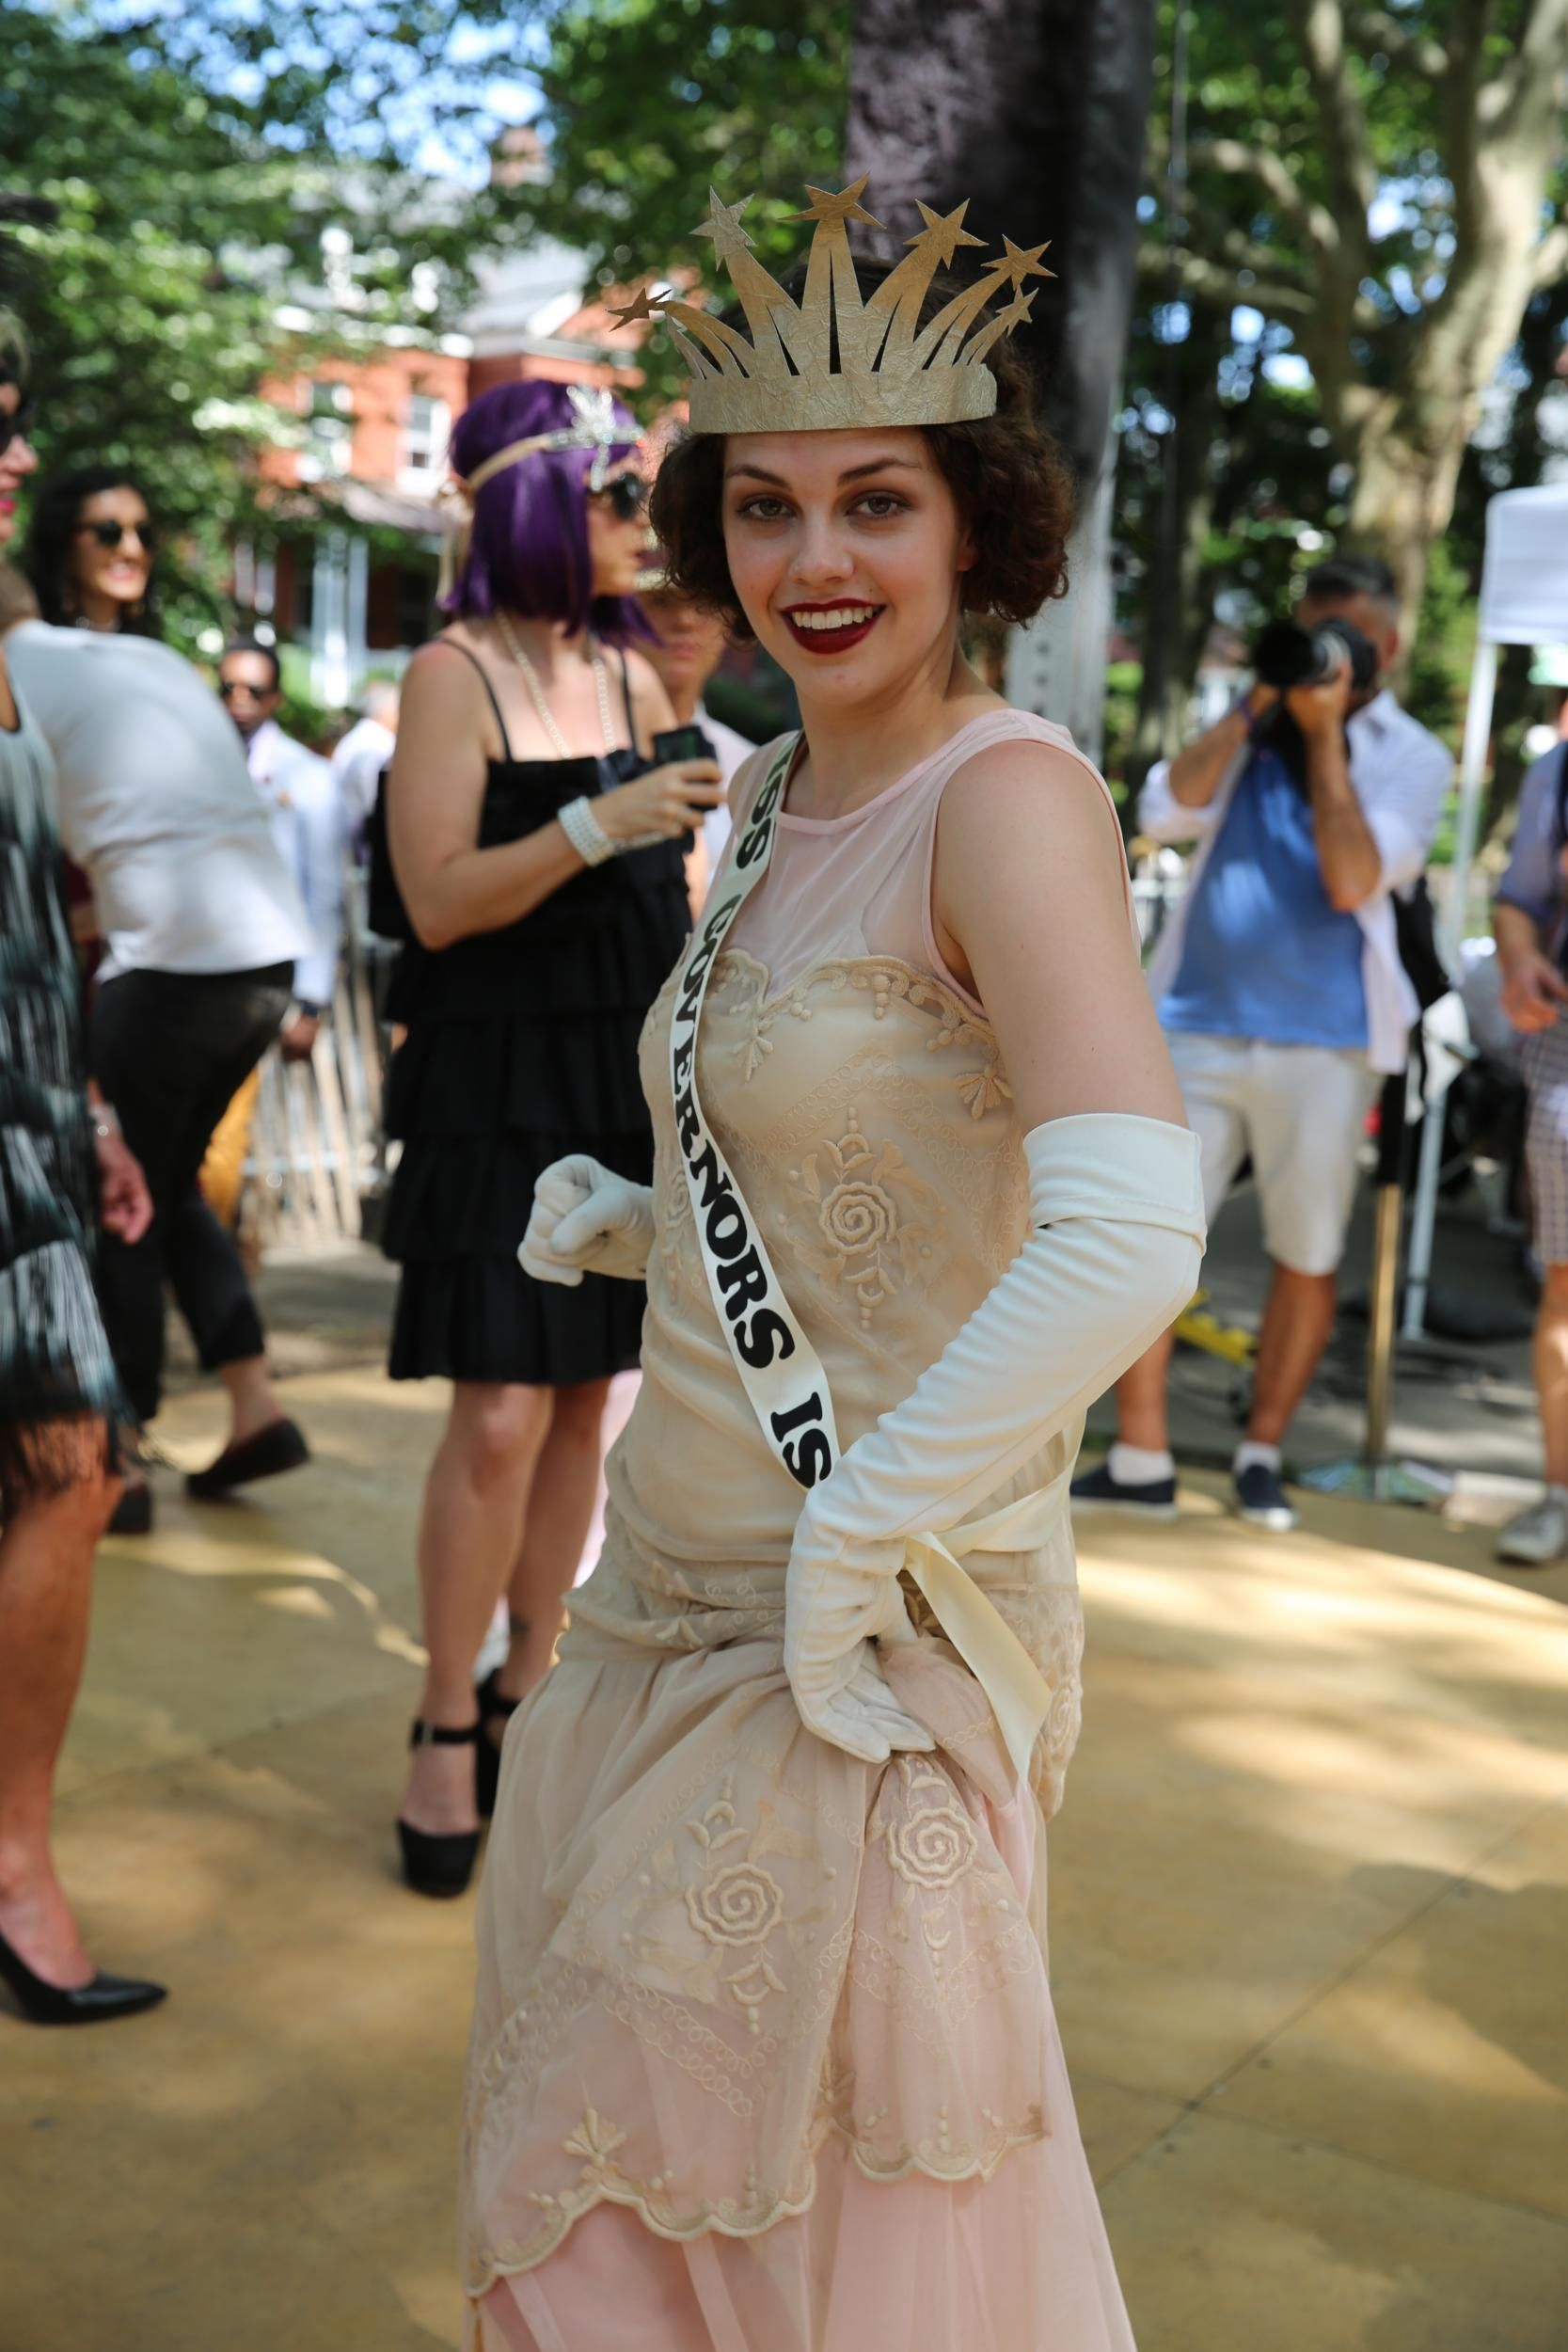 The Jazz Age Lawn Party Was a Marvel of u002720s-Inspired Dresses Hats and Hair  sc 1 st  Pinterest & The Jazz Age Lawn Party Was a Marvel of u002720s-Inspired Dresses Hats ...